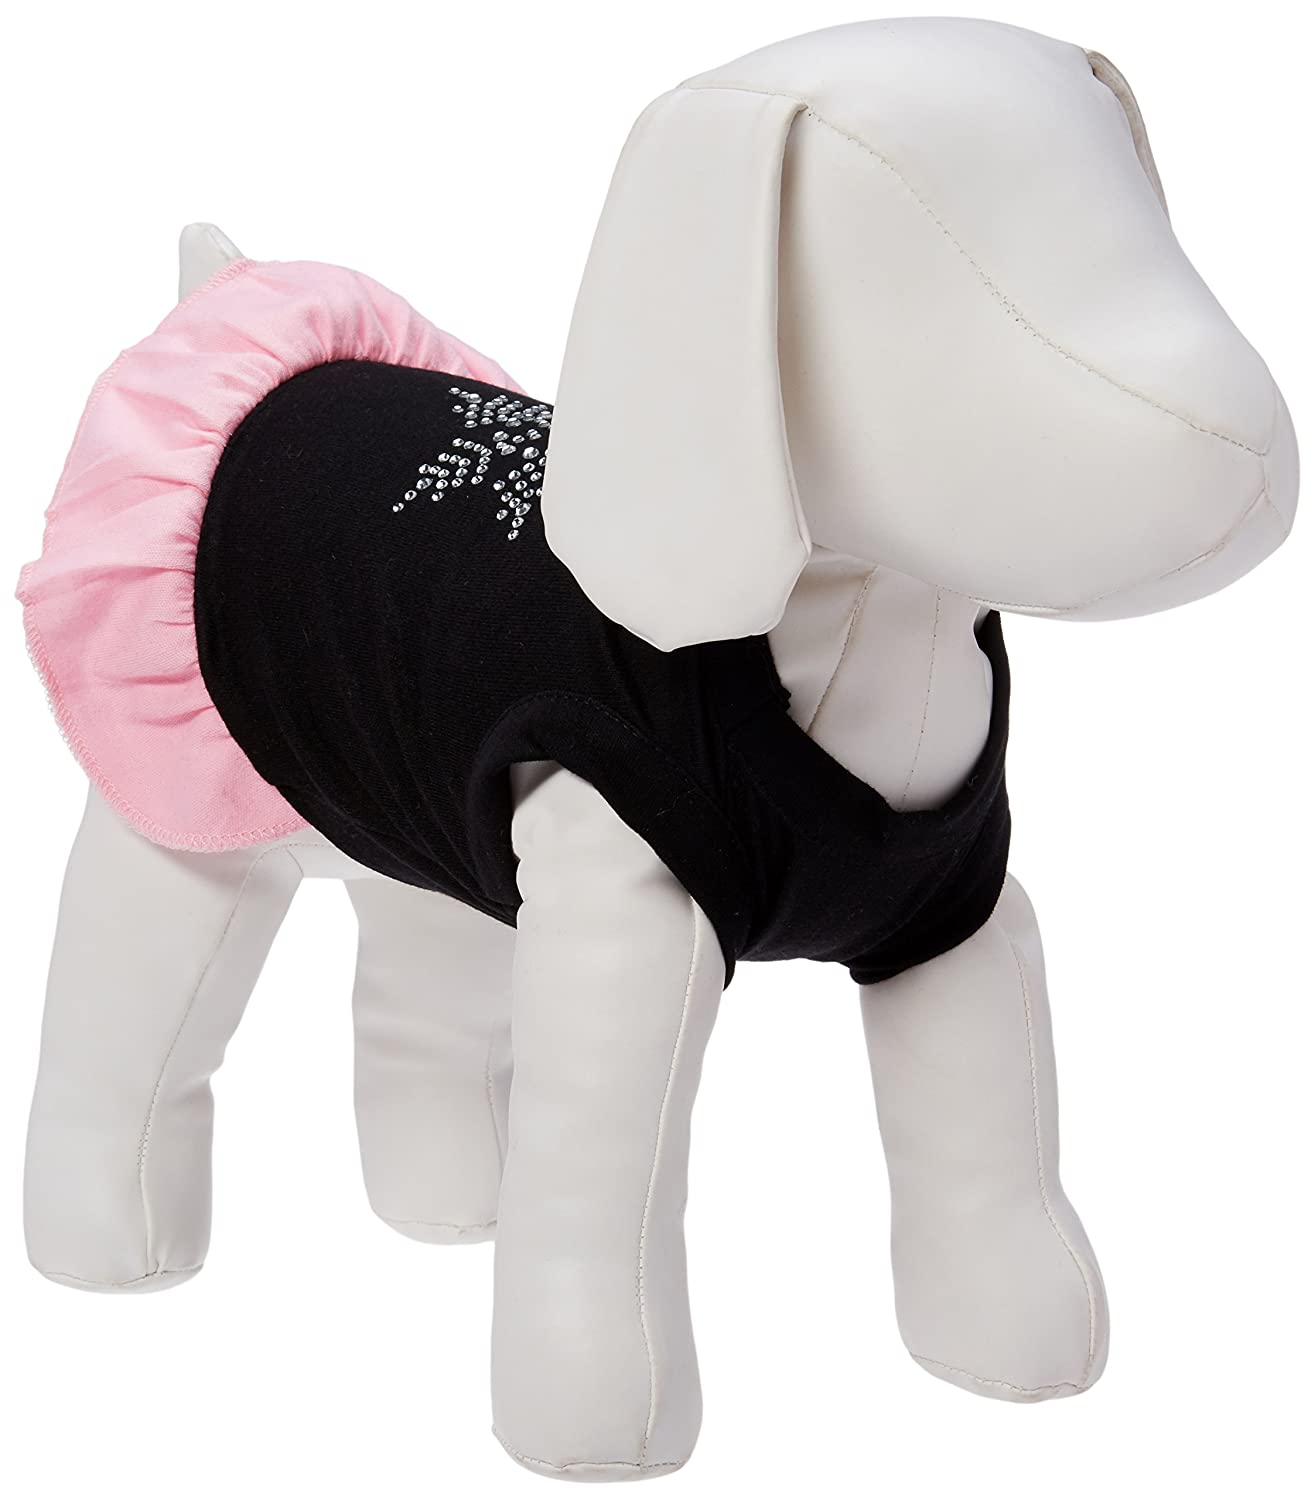 Mirage Pet Products Snowflake Rhinestone 10-Inch Pet Dress, Small, Black with Pink